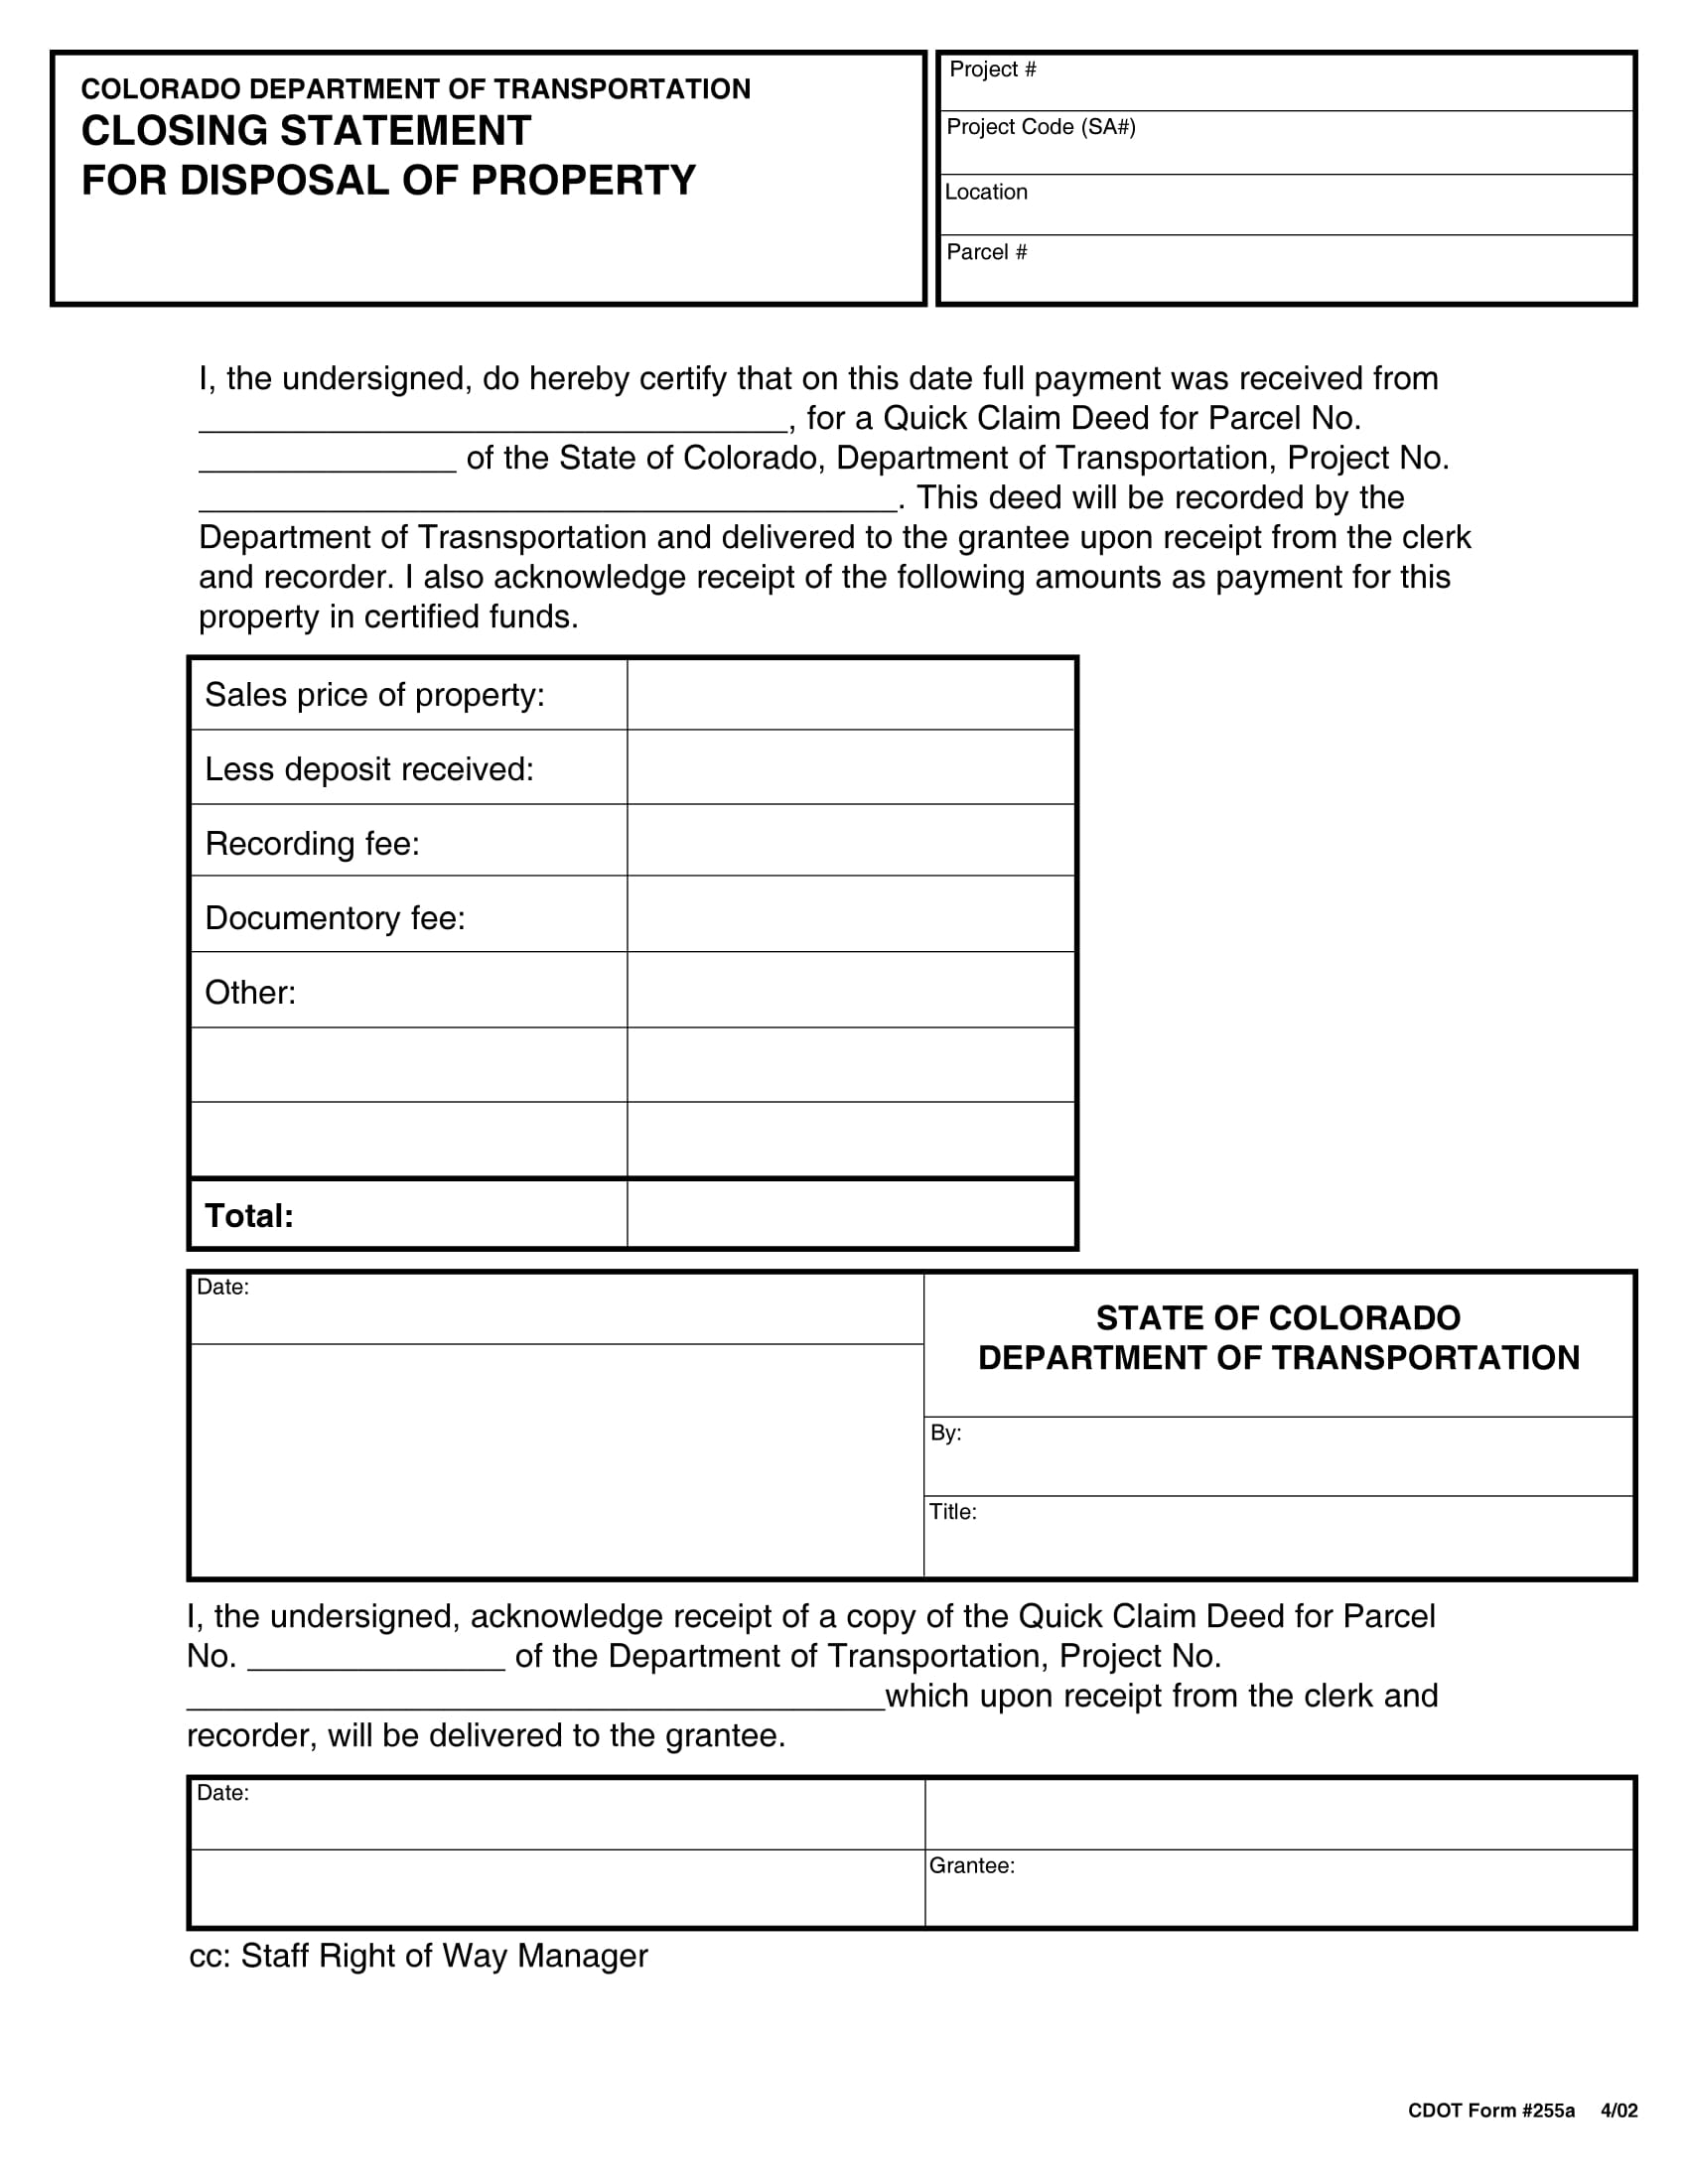 property disposal closing statement form 1